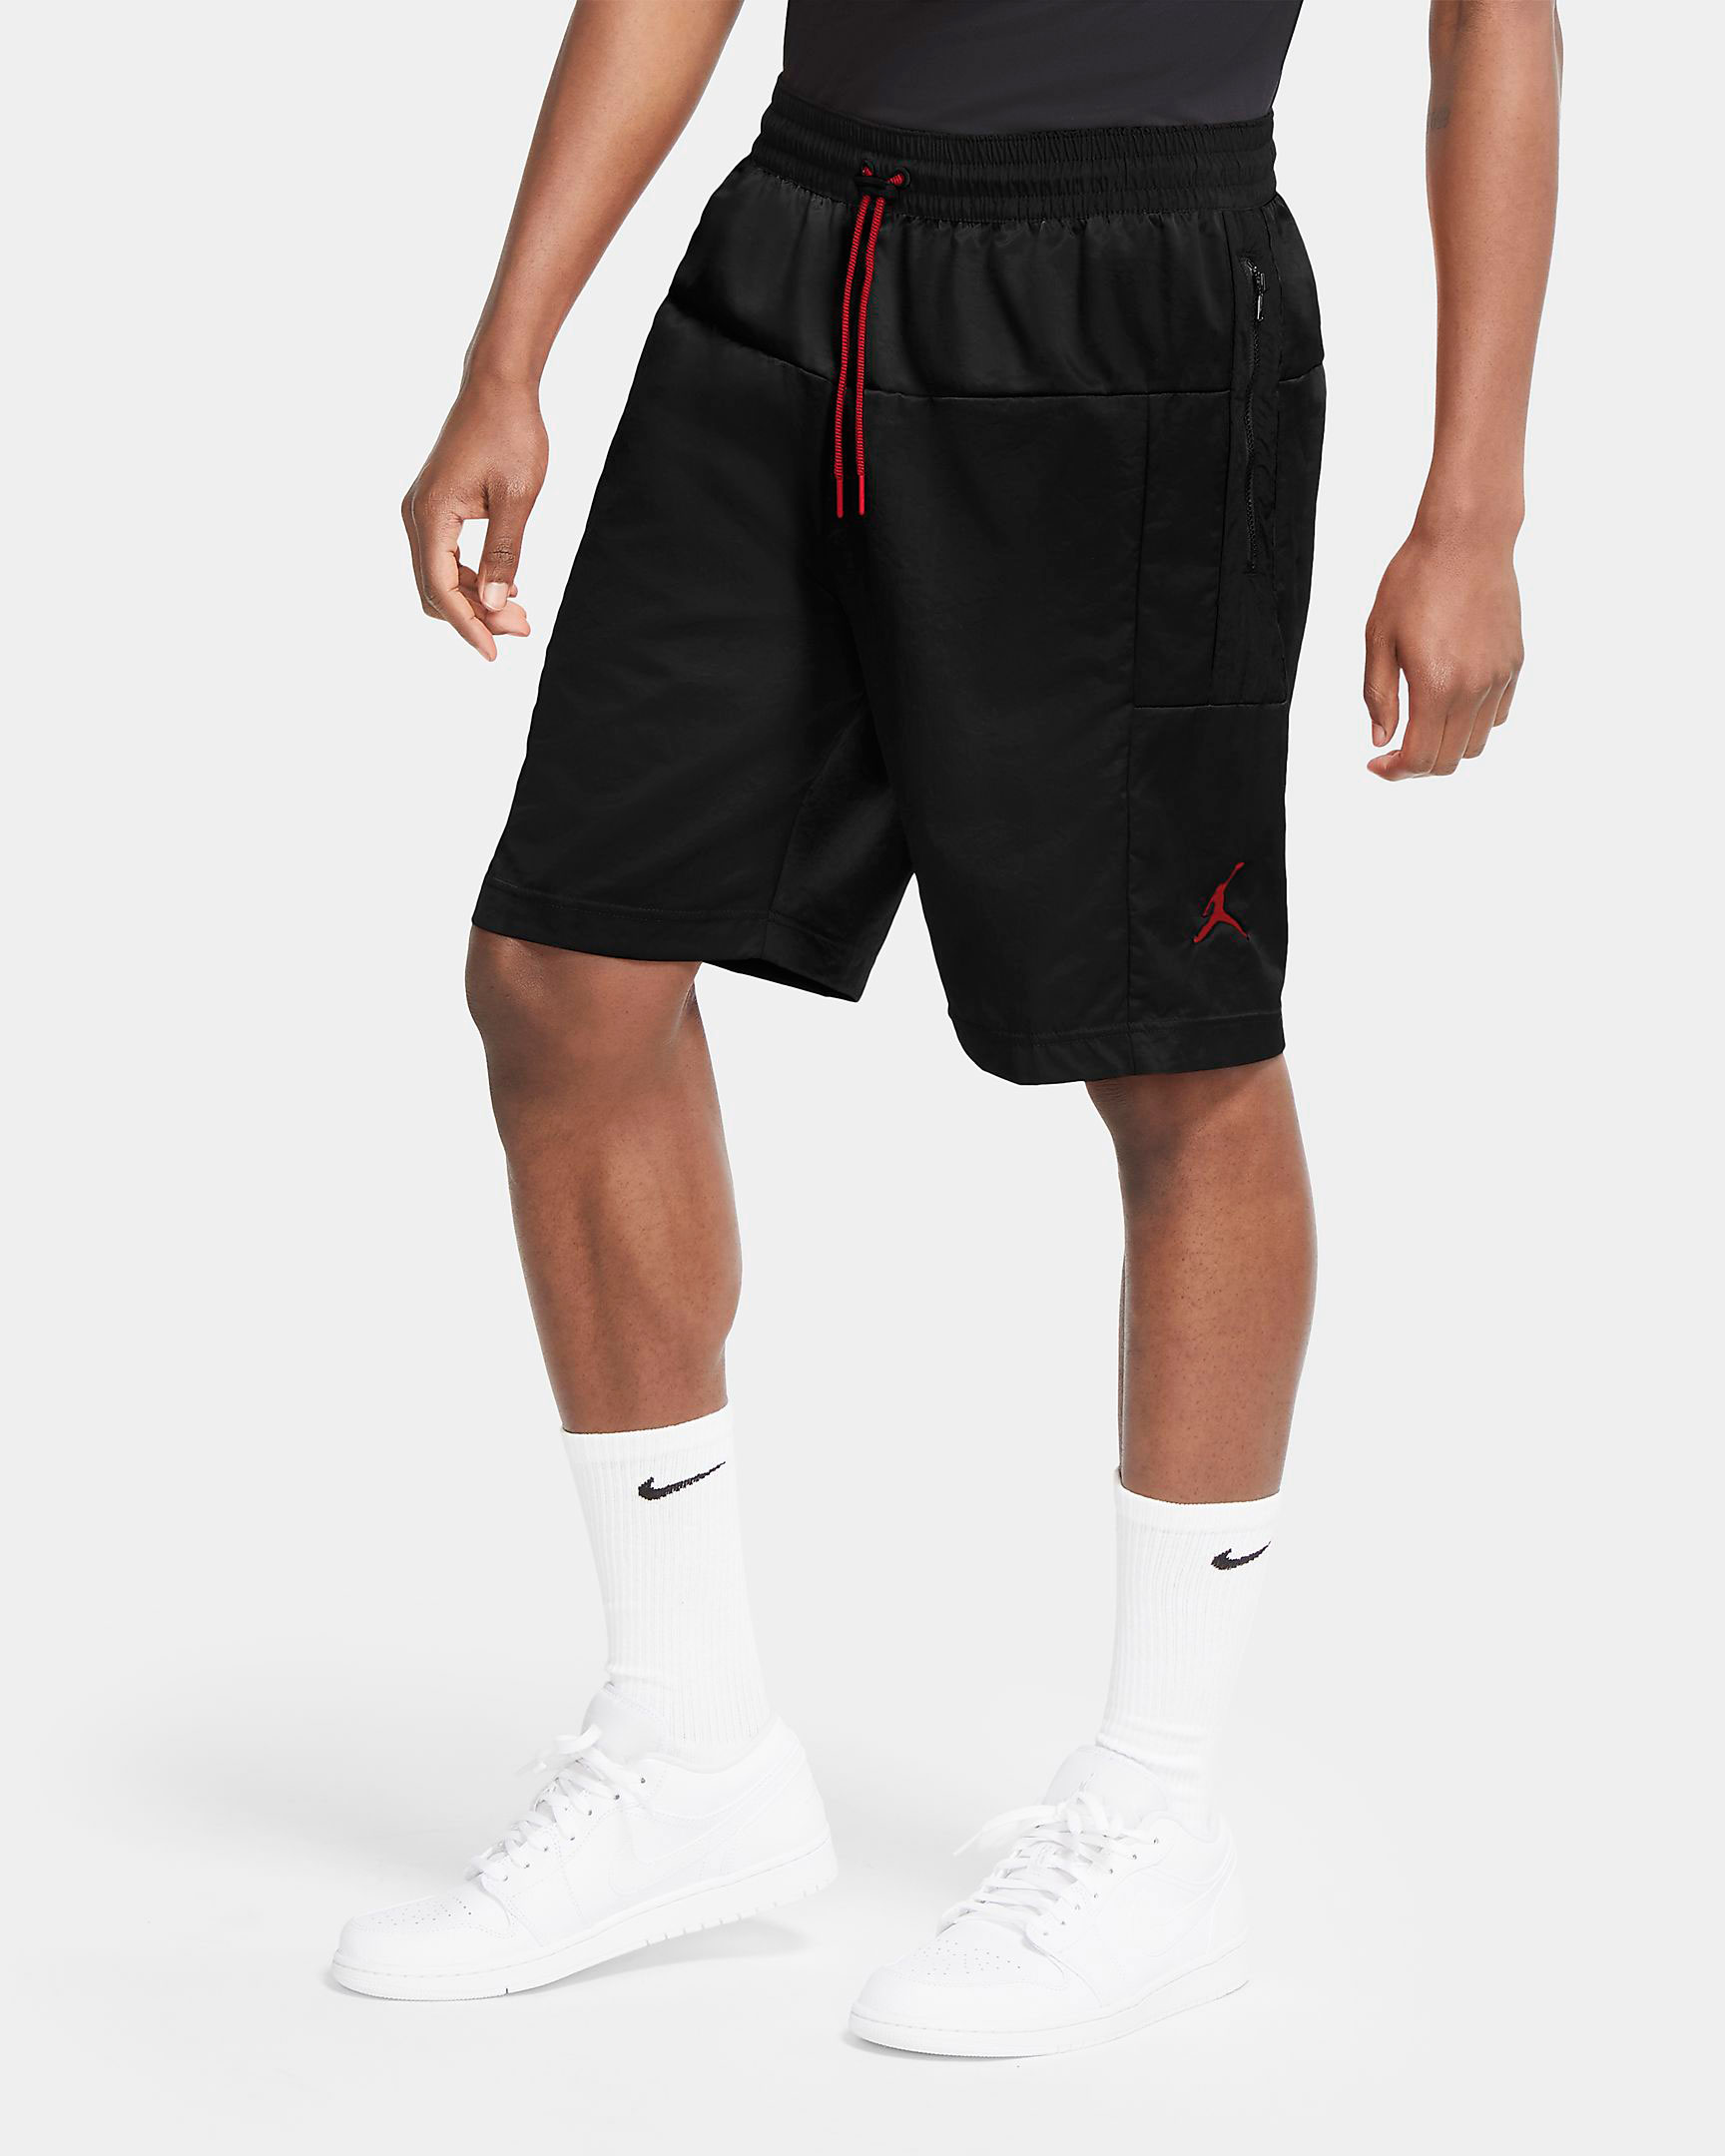 jordan-black-gym-red-block-shorts